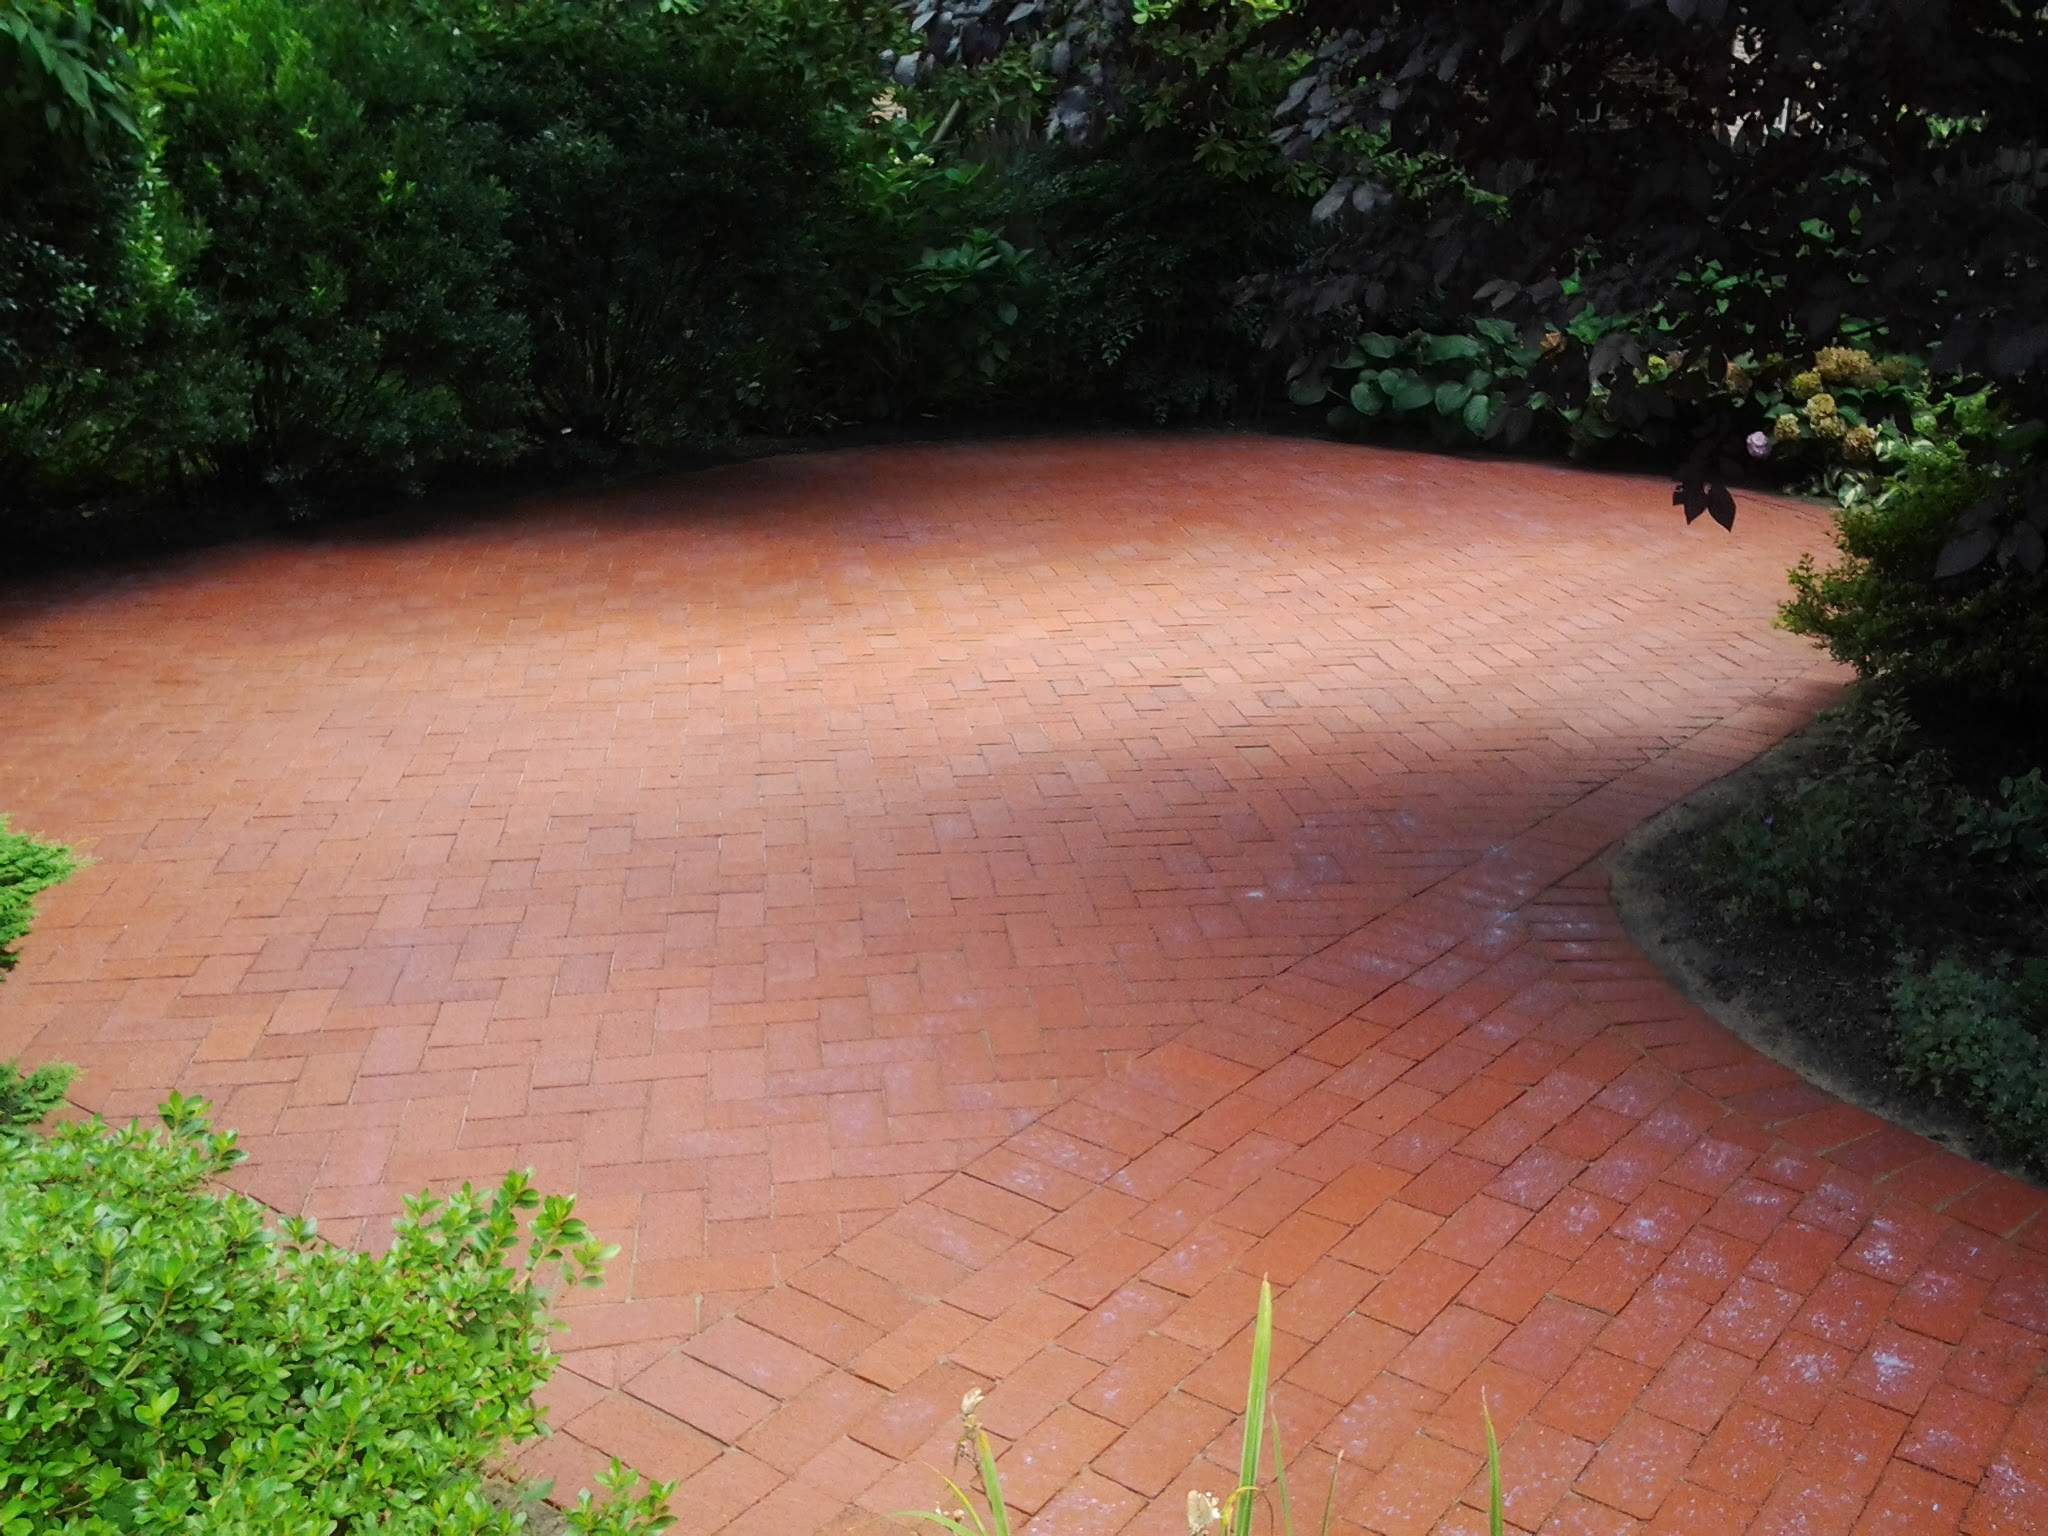 Brick Paver Restoration, Cleaning, and Sealing in Lancaster